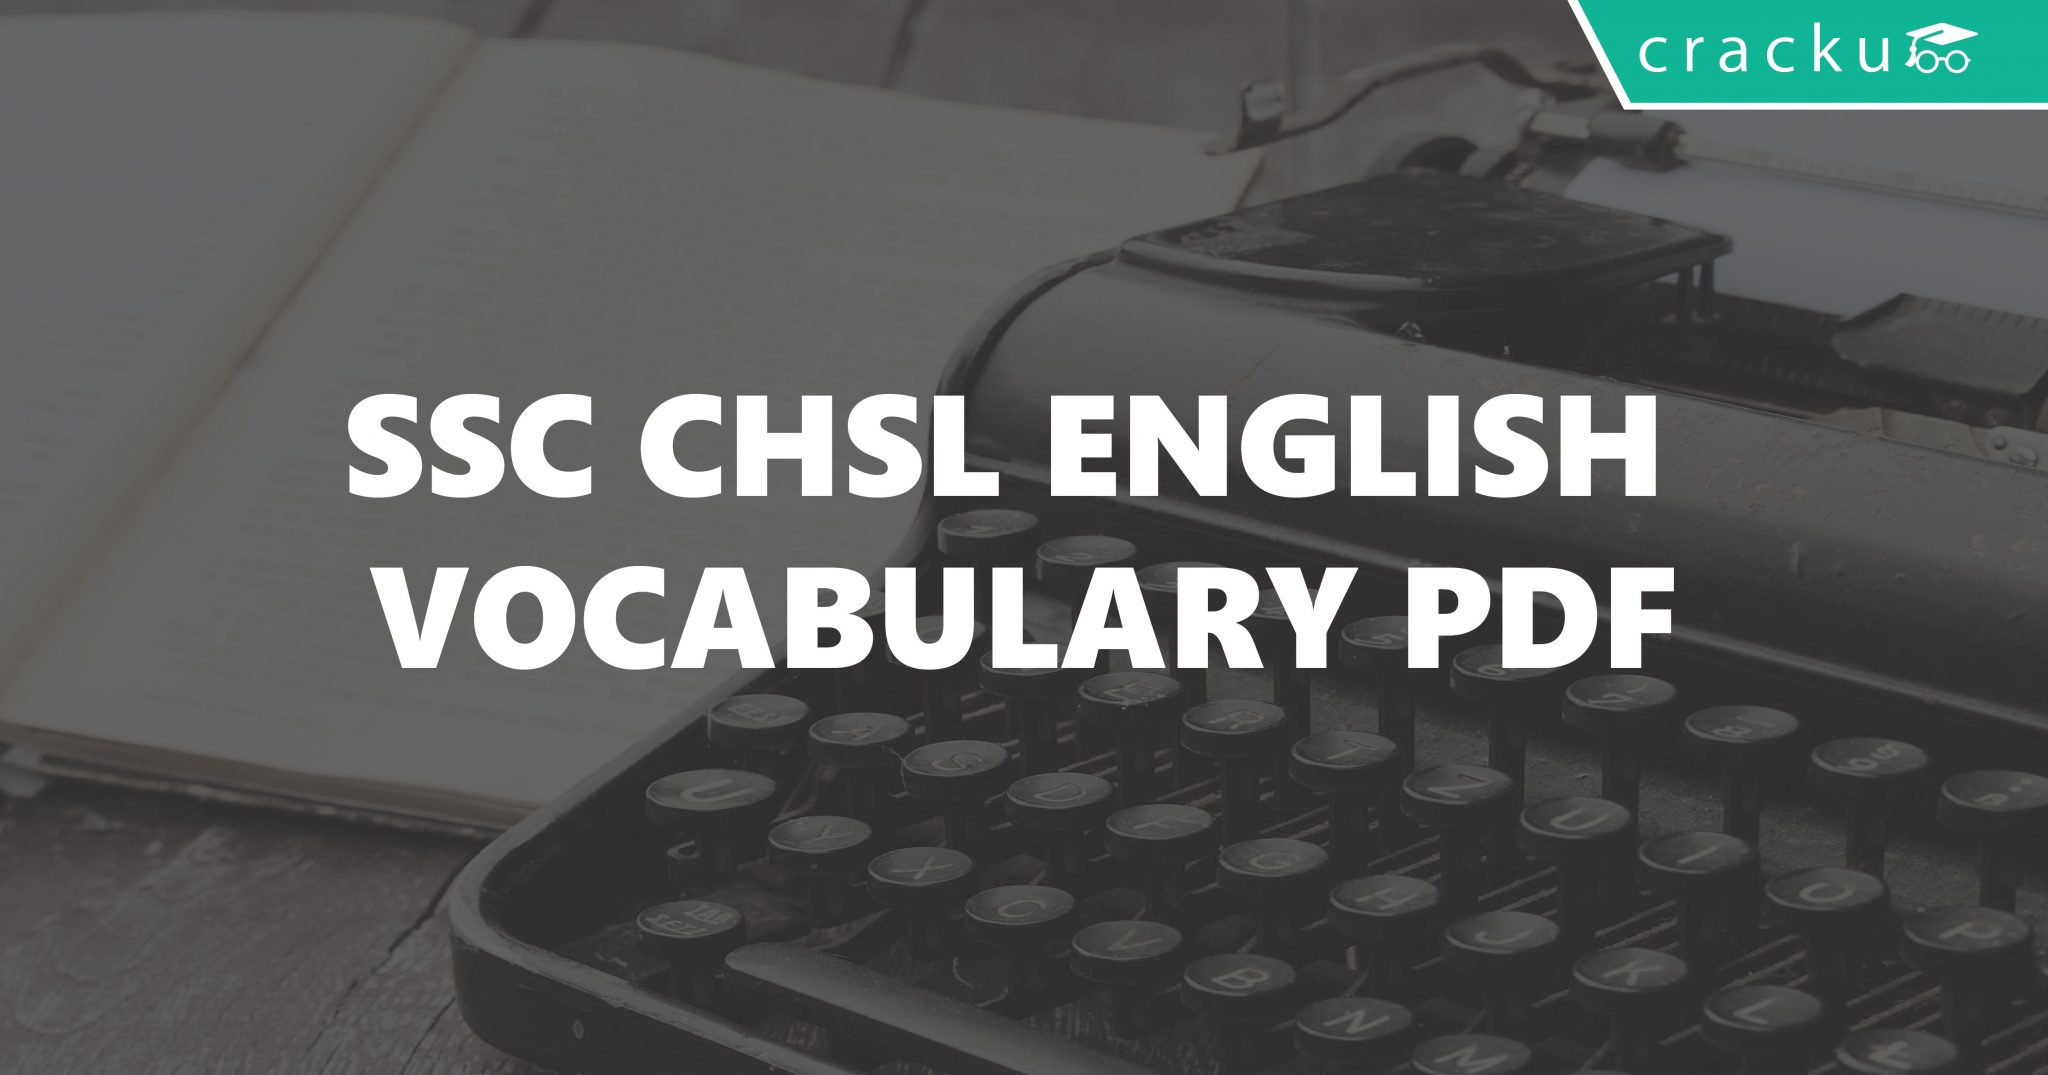 Synonyms and antonyms for SSC CHSL pdf questions - Cracku